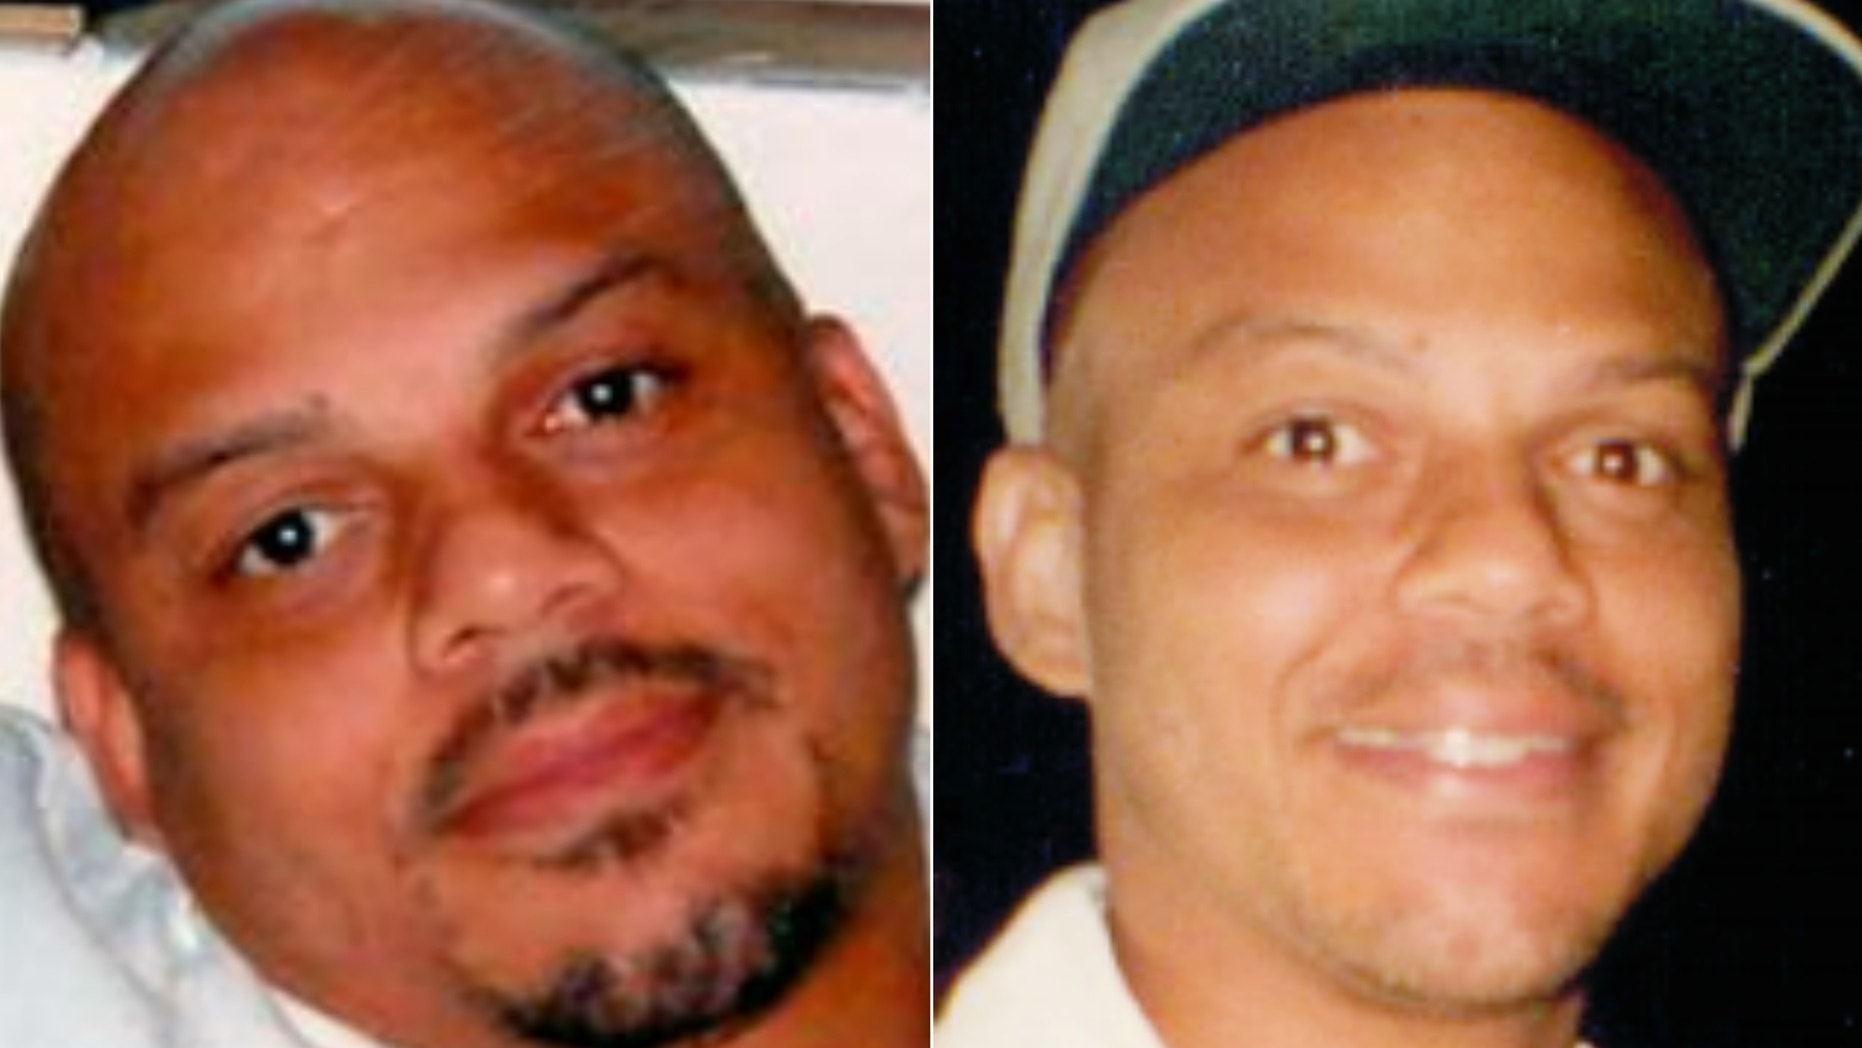 Andre Neverson, 54, was arrested in the 2002 murders of his sister and former girlfriend.